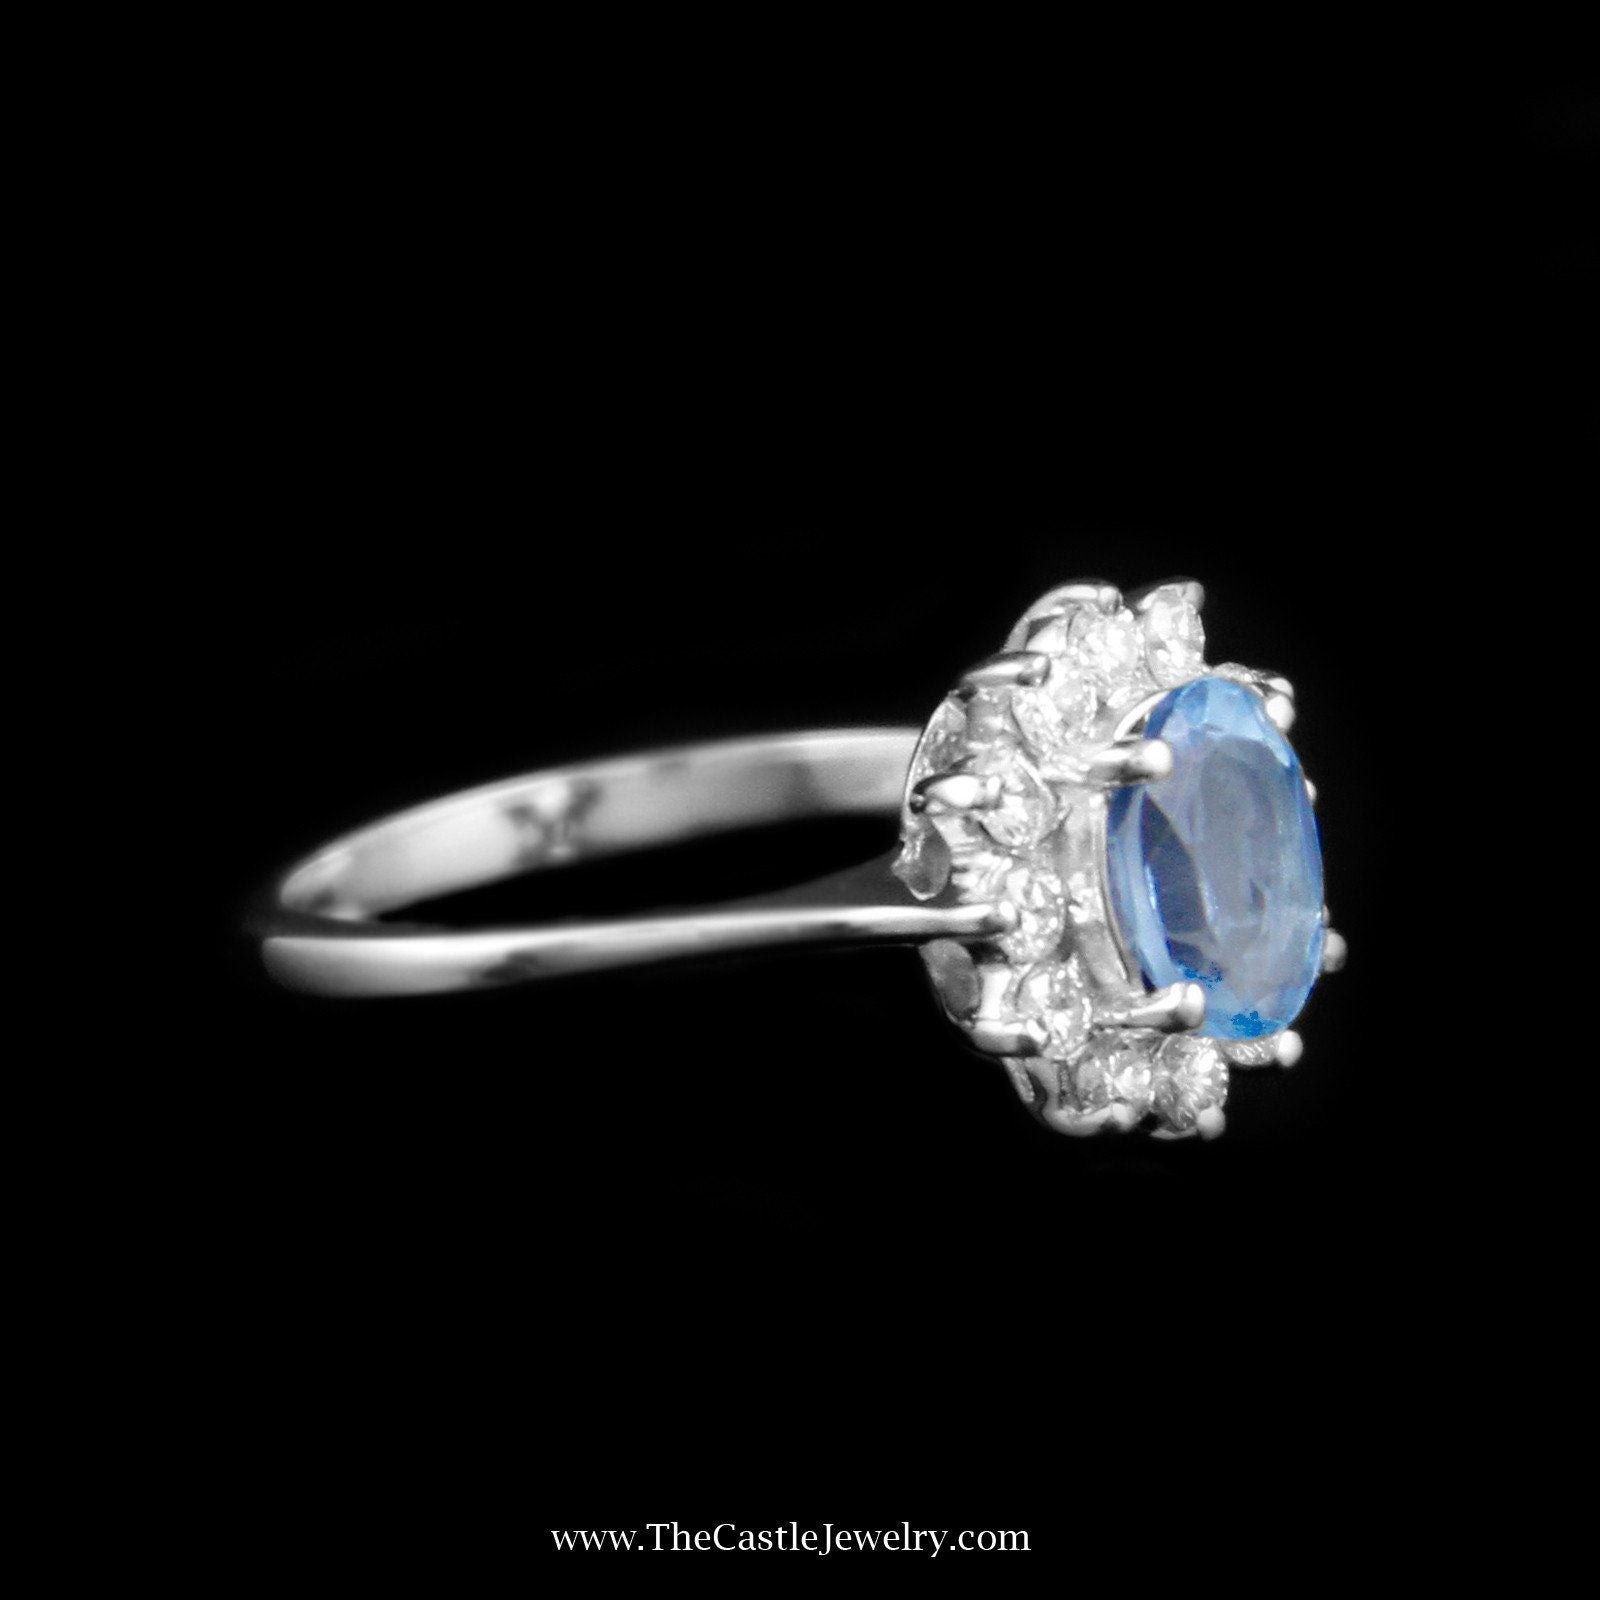 Charming Oval Topaz Ring with Diamond Bezel in 14K White Gold-2